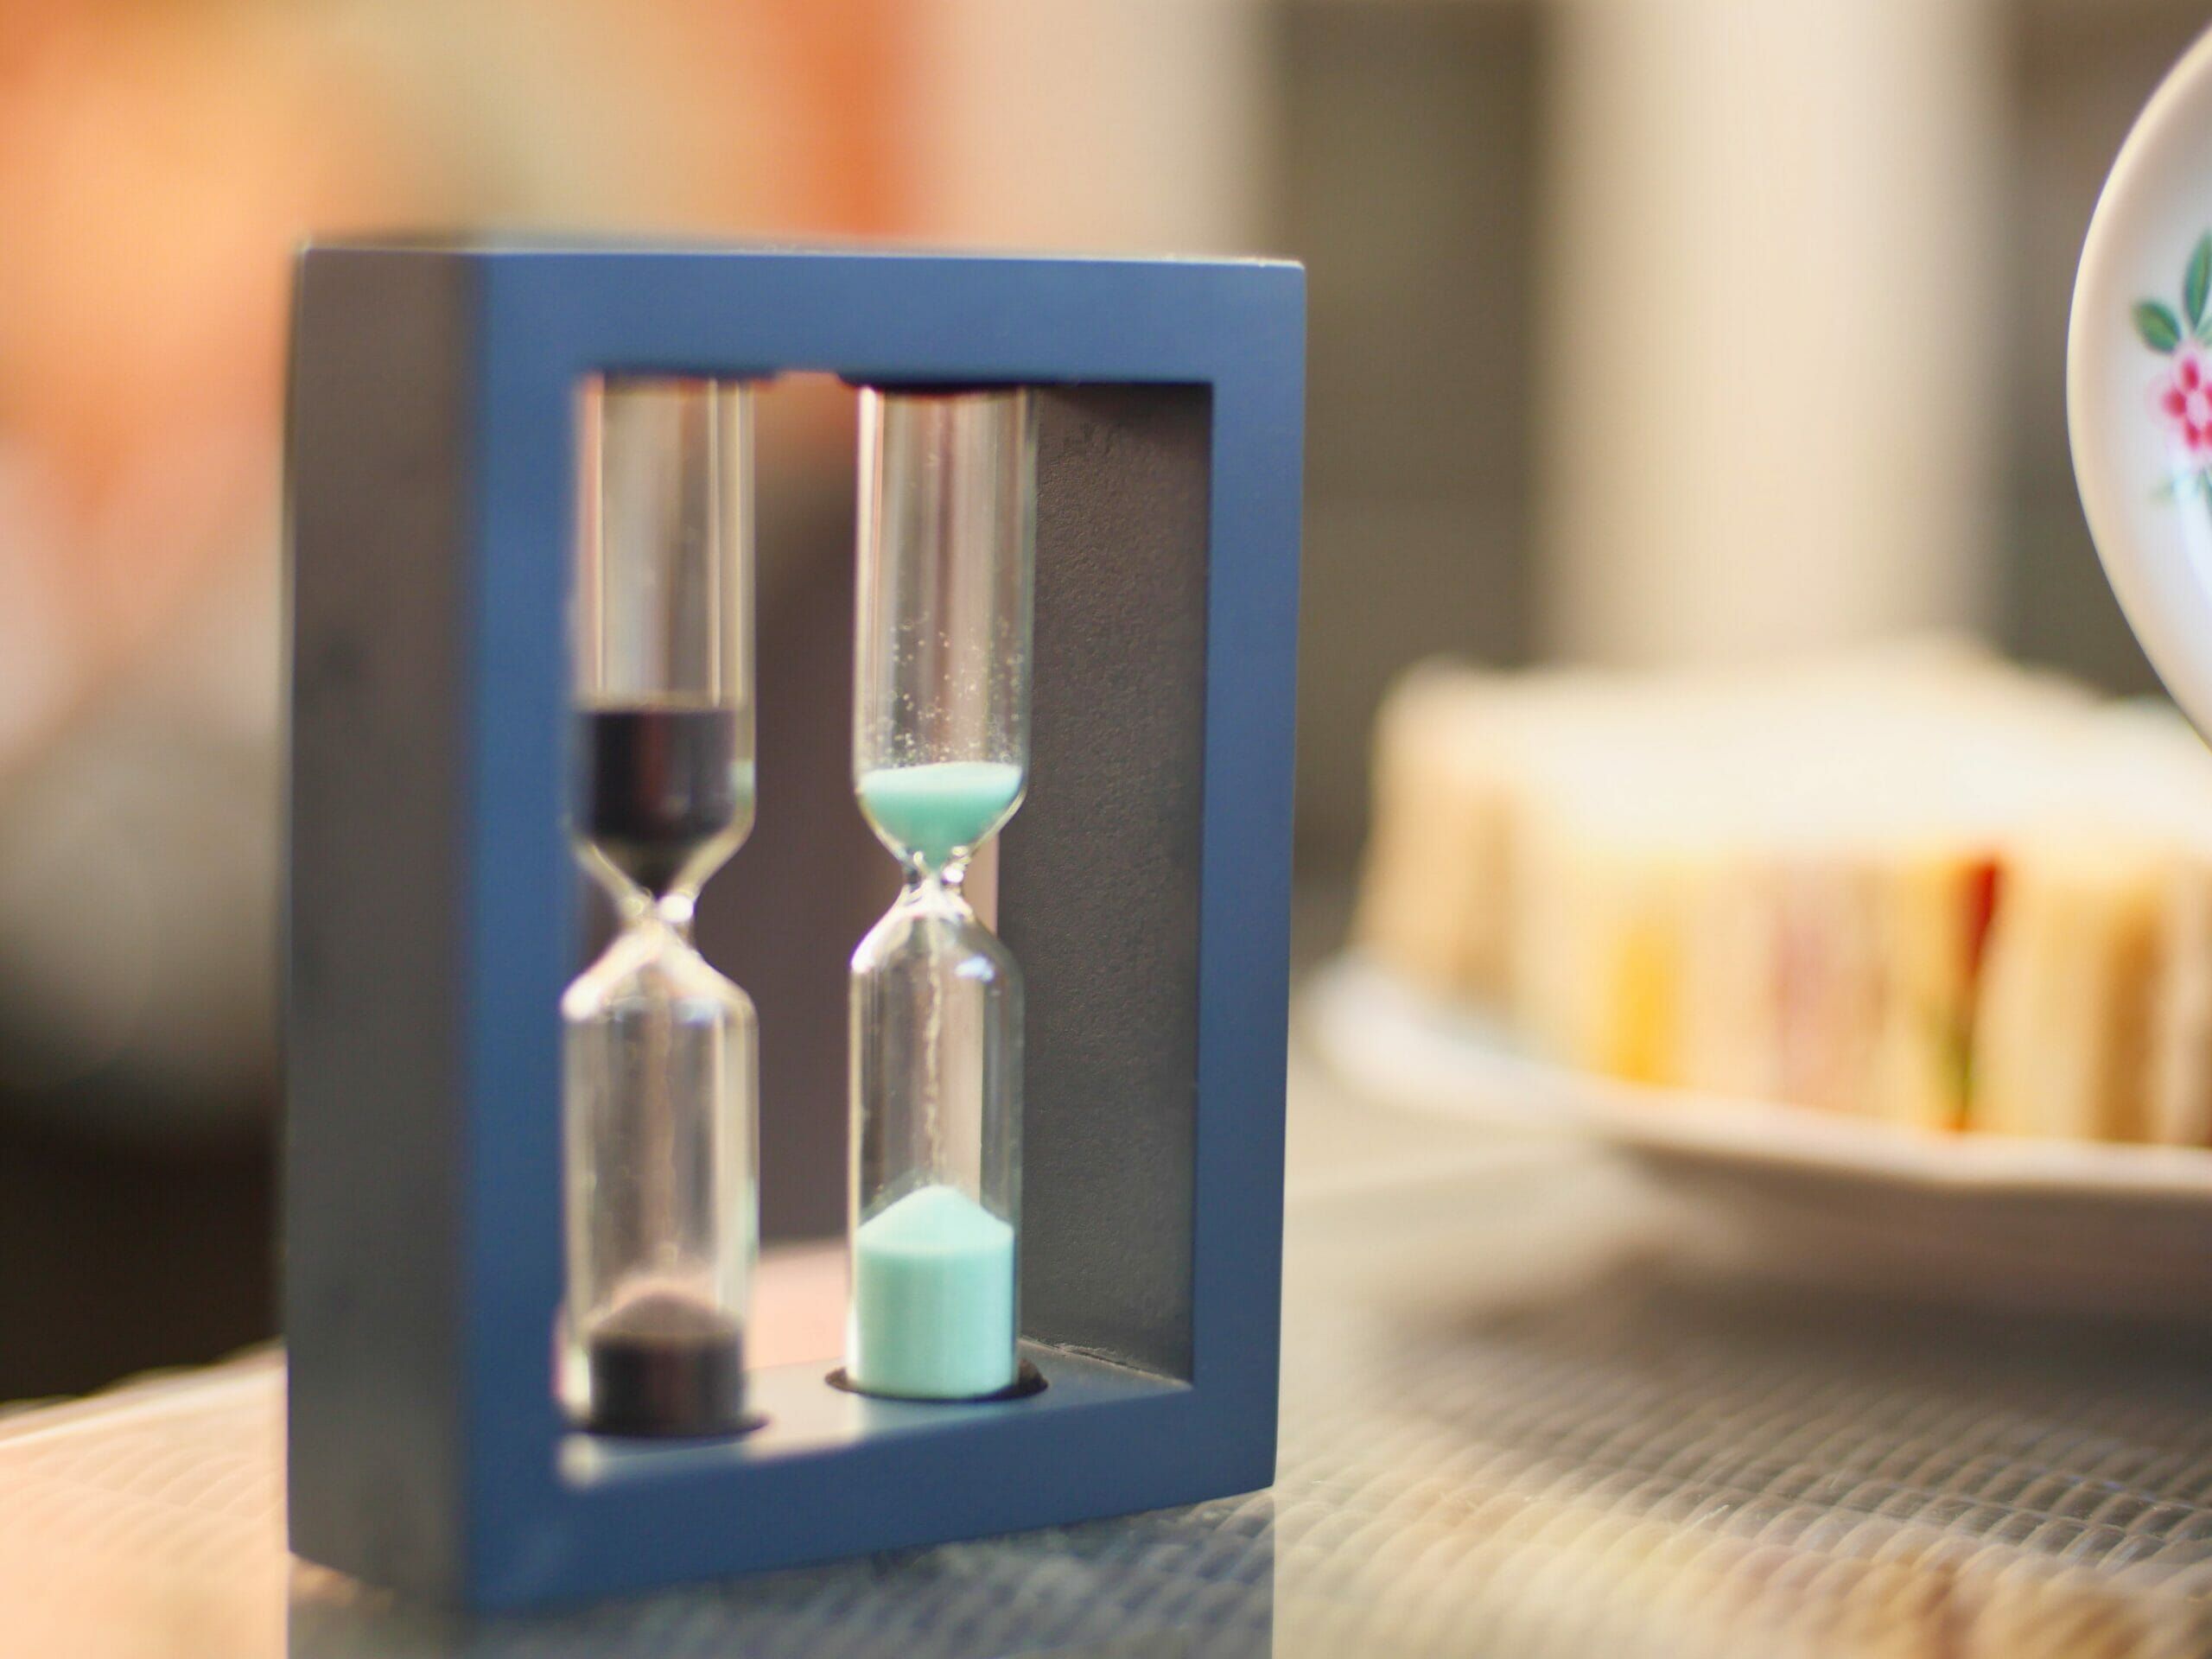 A tea timer with two sand timers, one with black sand and one with light blue sand